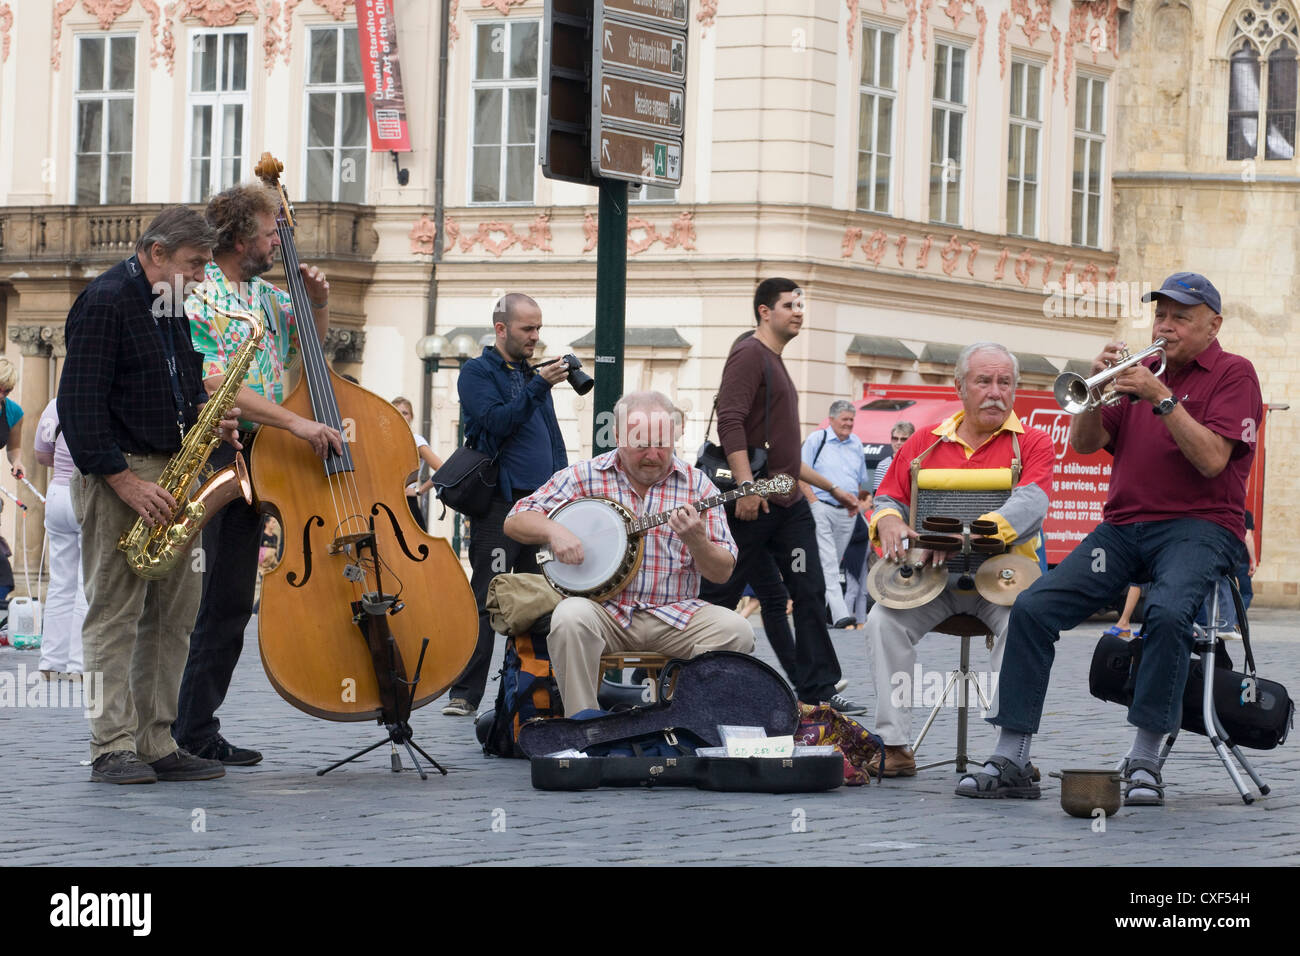 Street Performers Musicians on the streets of Prague - Stock Image